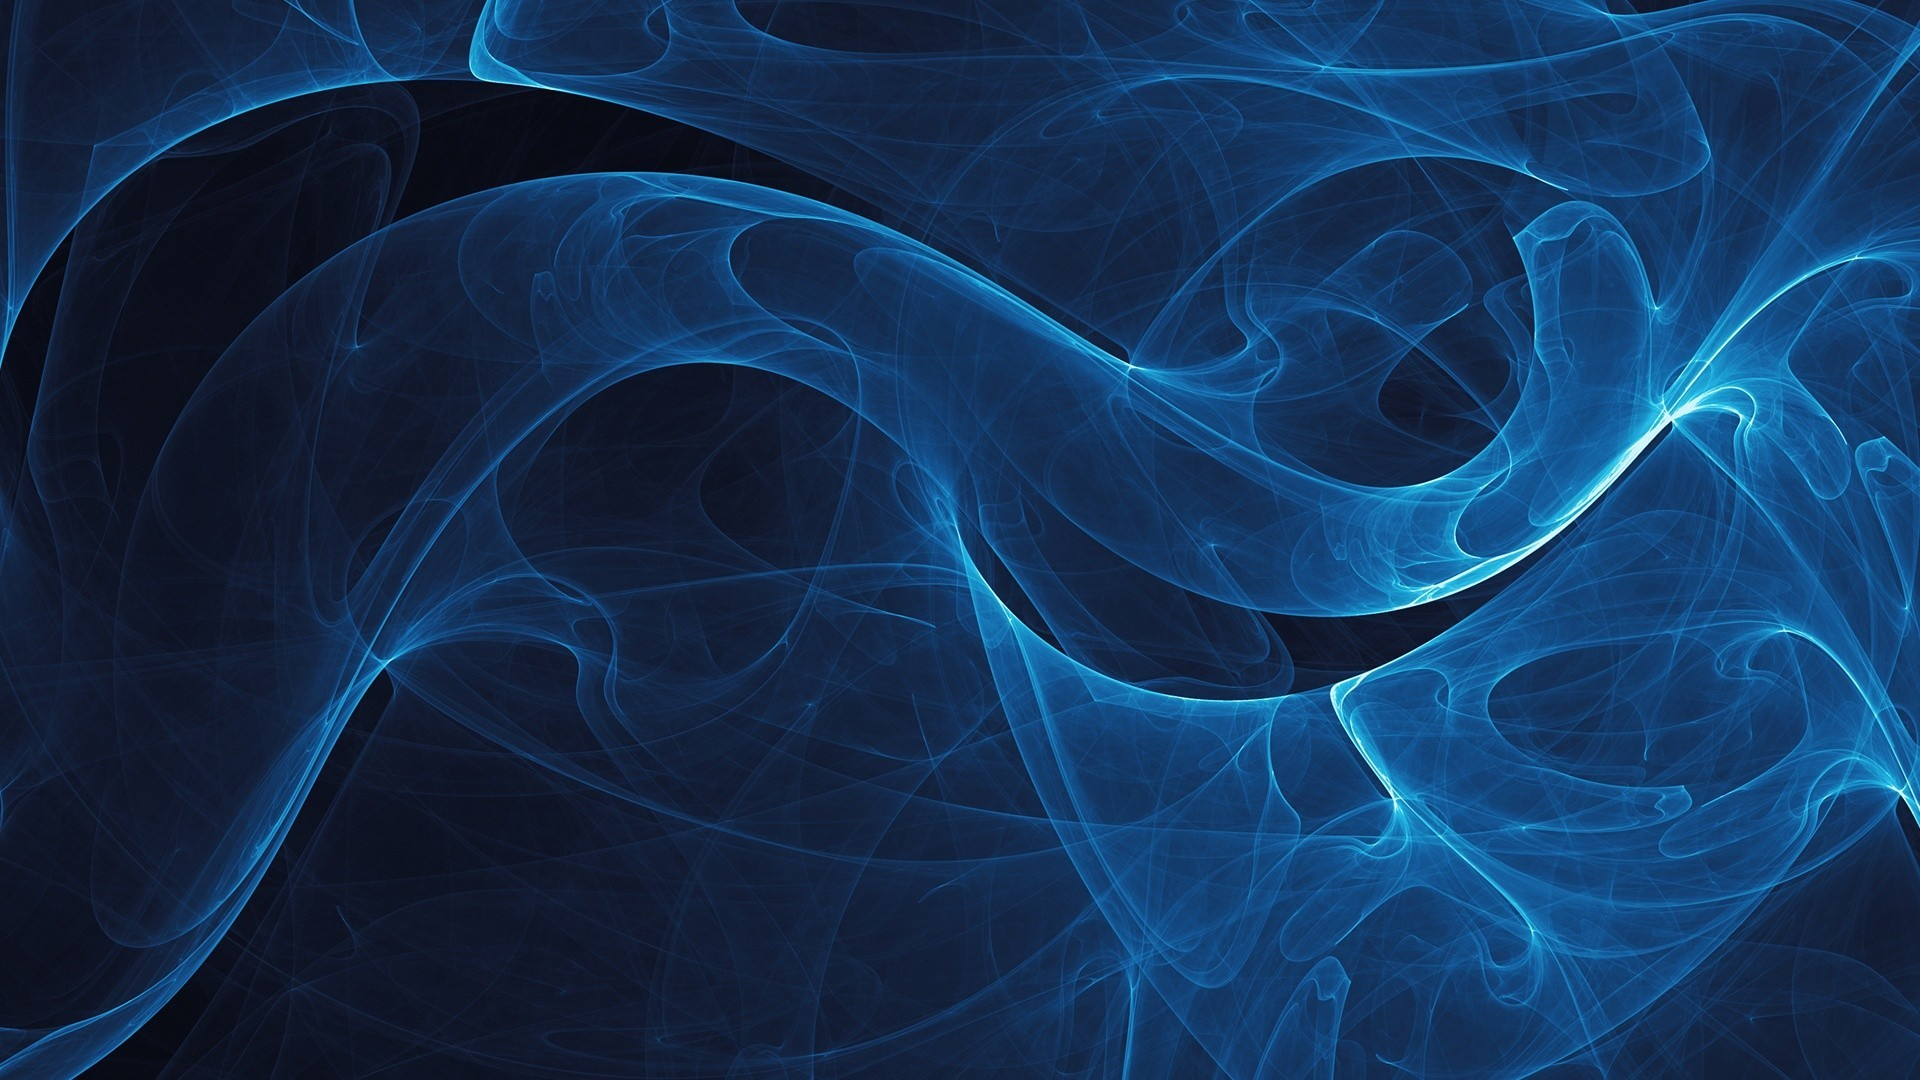 Res: 1920x1080, Wallpapers-Blue-Abstract-Gallery-(90-Plus)-PIC-WPW102669